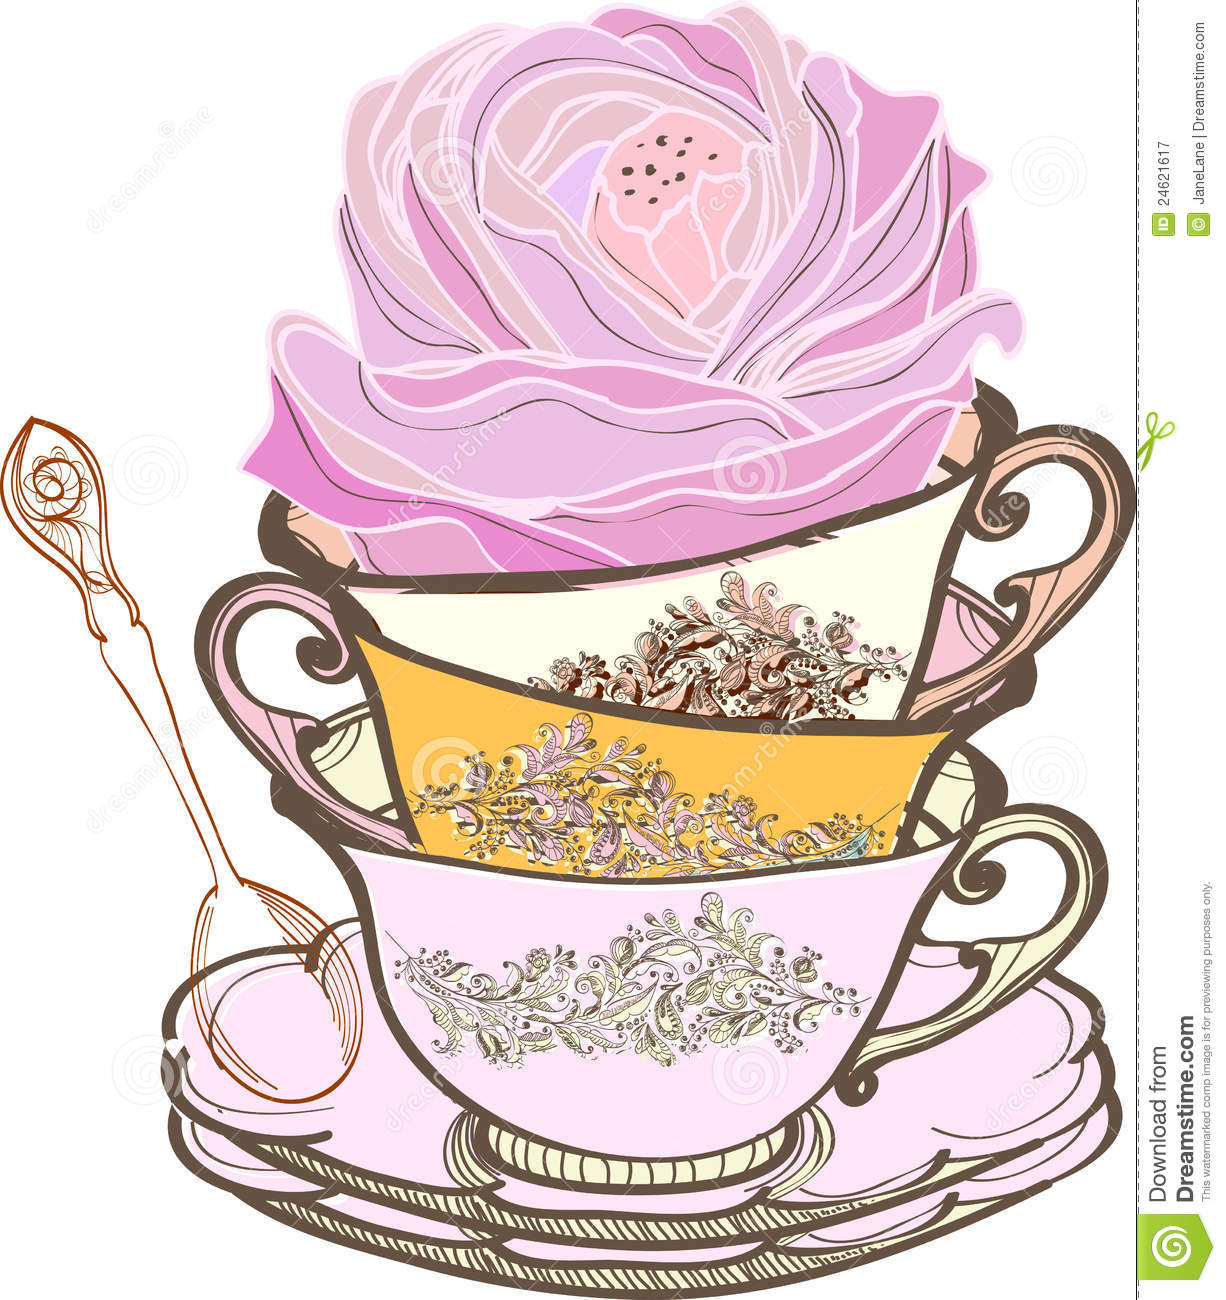 Fancy Teacup Clip Art Tea cup background with flower